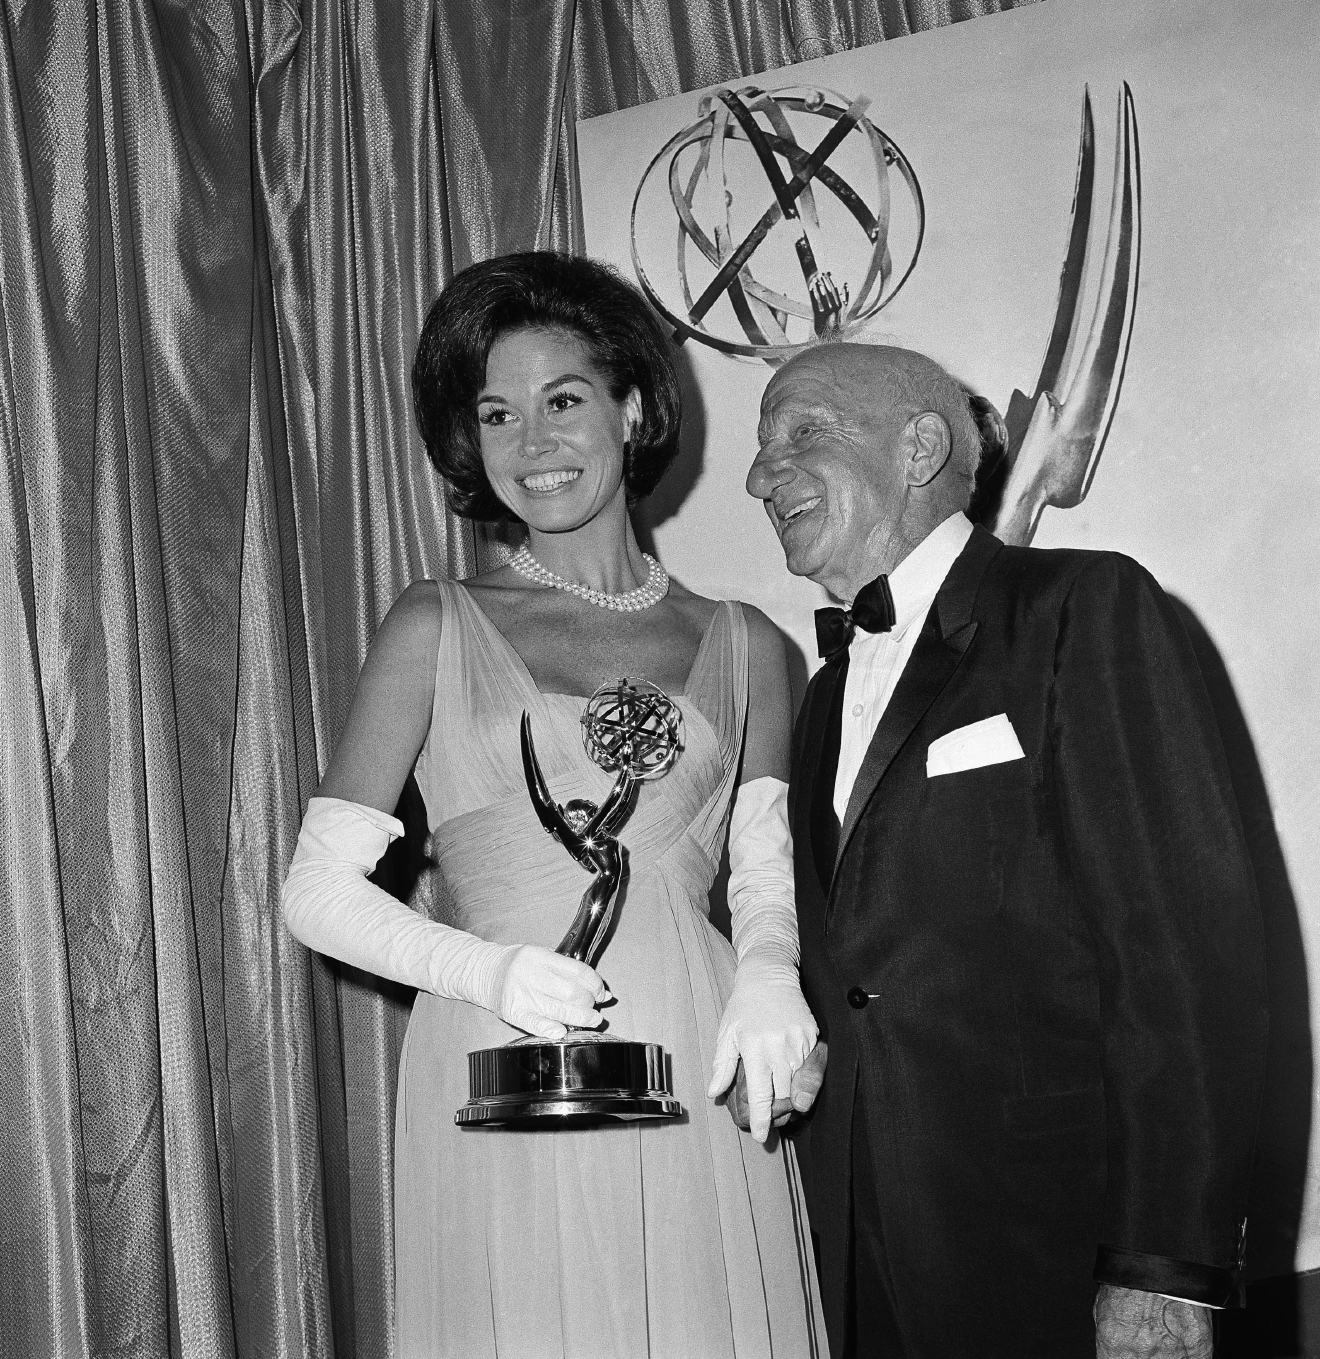 Mary Tyler Moore, who plays Dick Van Dyke's wife on his television show, holds the Television Academy Emmy for outstanding individual achievement awarded to him, in Hollywood, Calif., Sept. 12, 1965. With her is Jimmy Durante who made the presentation. Van Dyke, a previous Emmy winner, was not present at the awards show. (AP Photo/Richard Strobel)